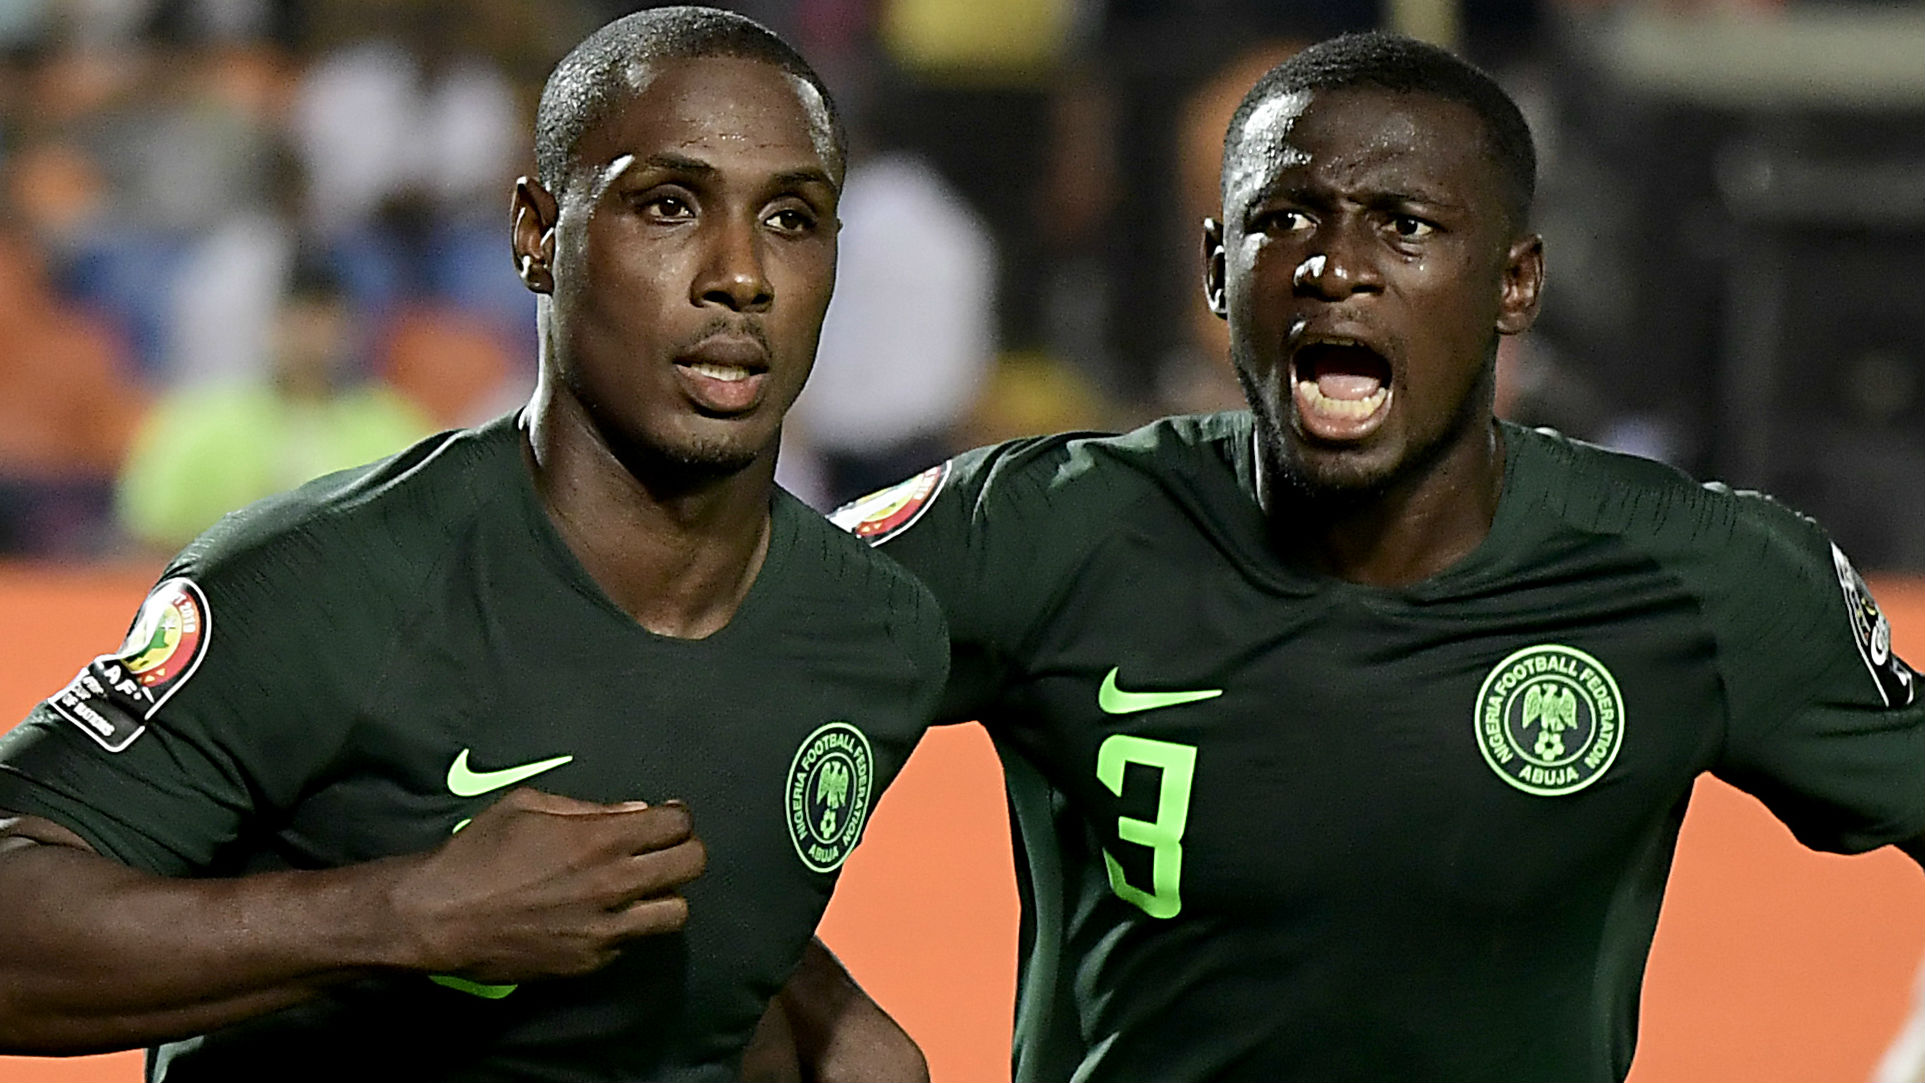 AFCON: Tunisia faces Nigeria in third place play-off